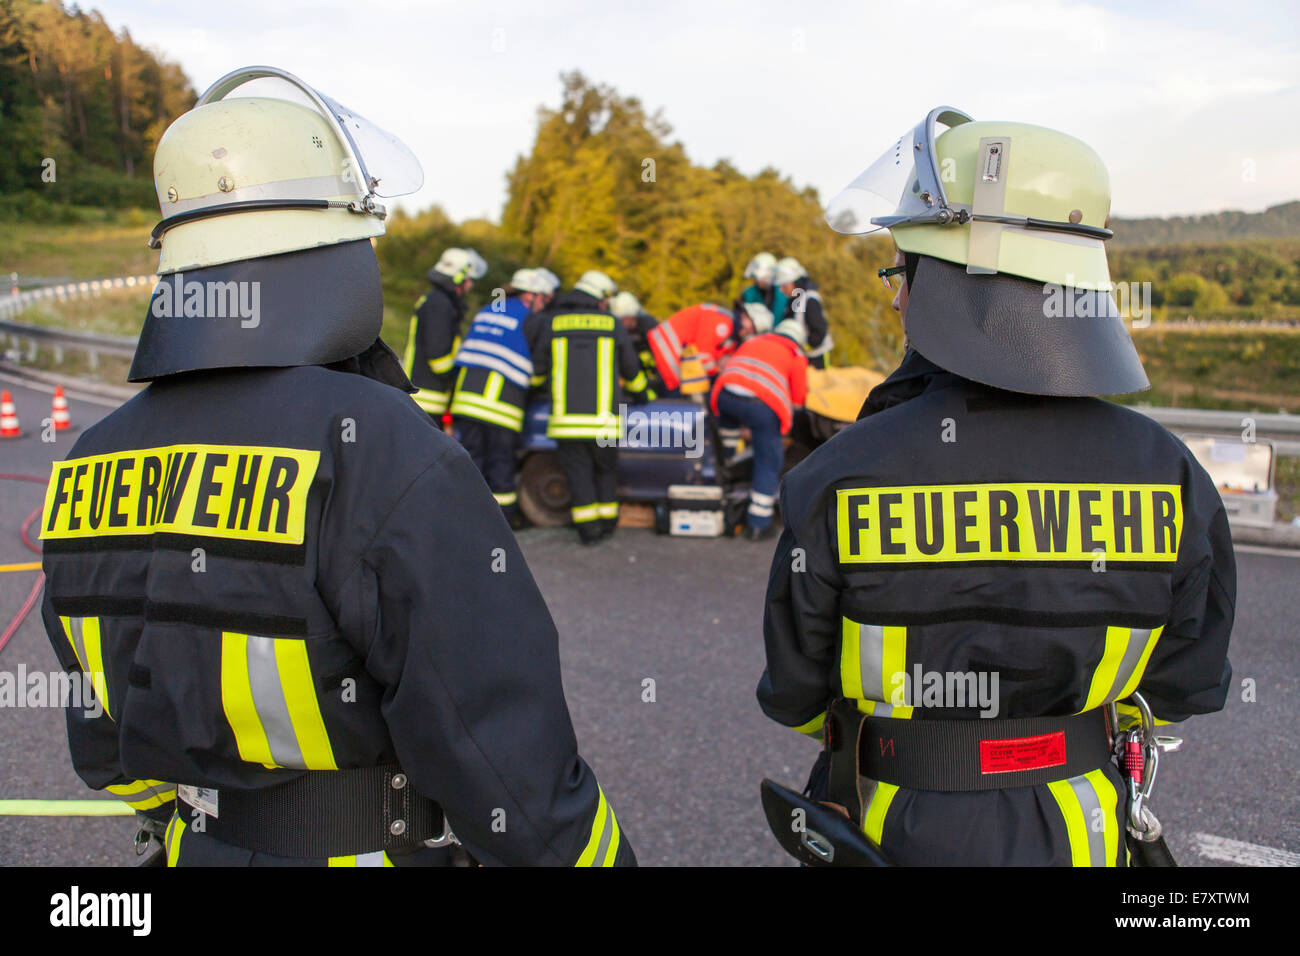 Joint training exercise of the Bad Säckingen and Murg volunteer fire brigades and the German Red Cross of Bad - Stock Image